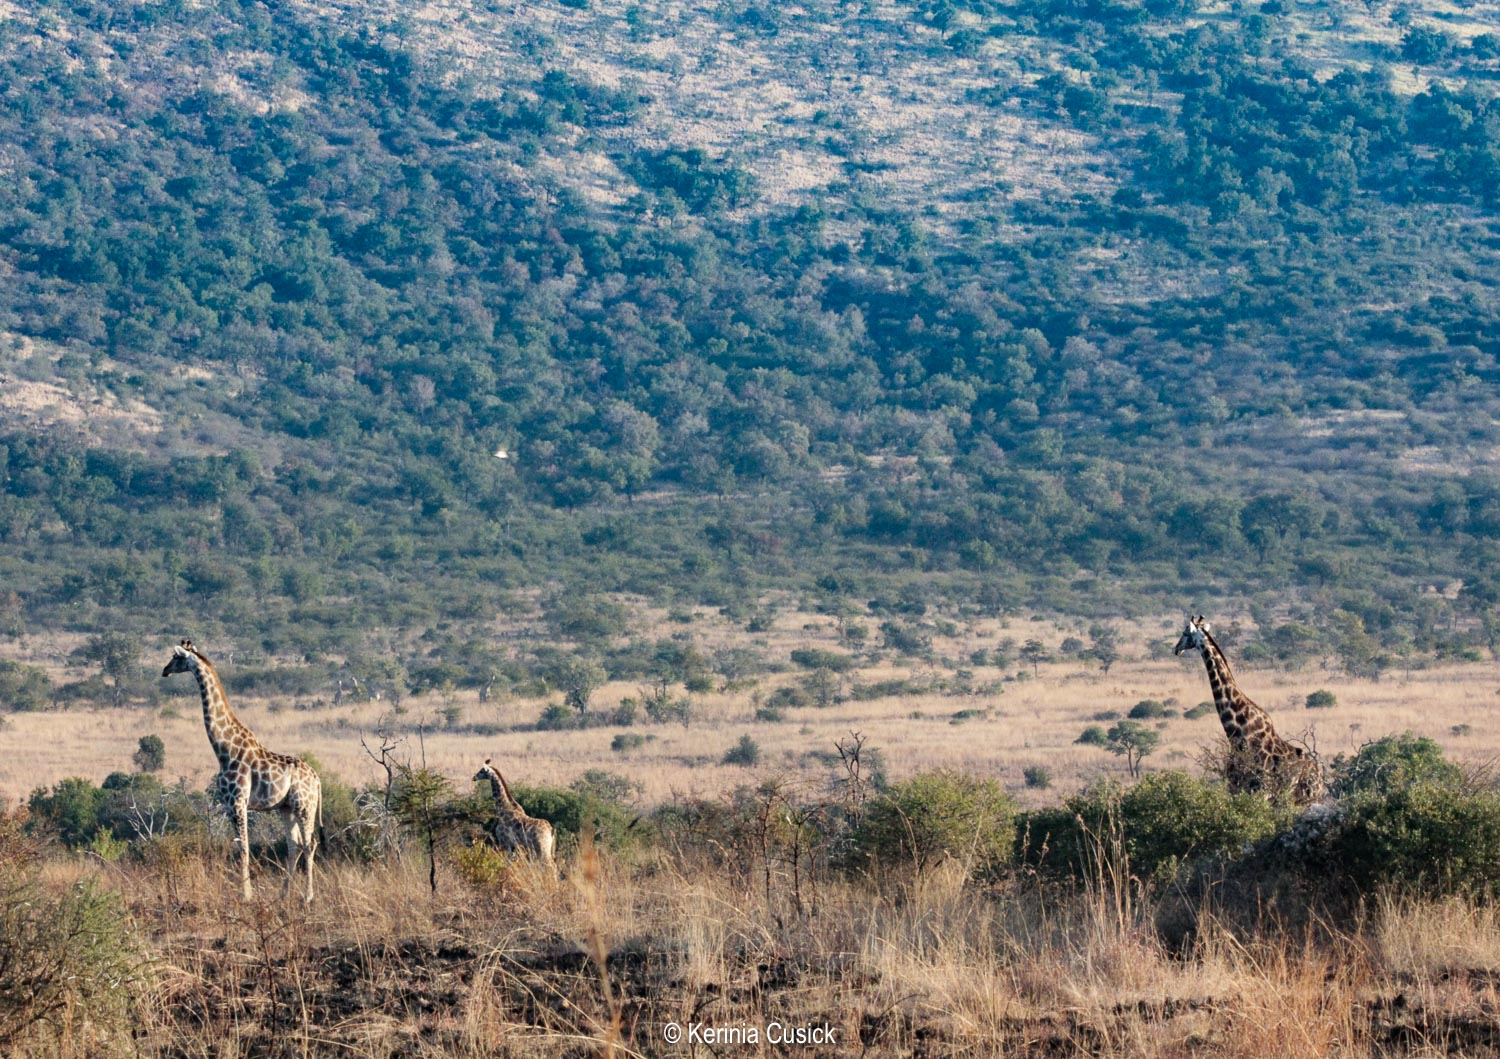 Pilanesberg is in an ancient volcanic crater, the old crater walls make for a good backdrop